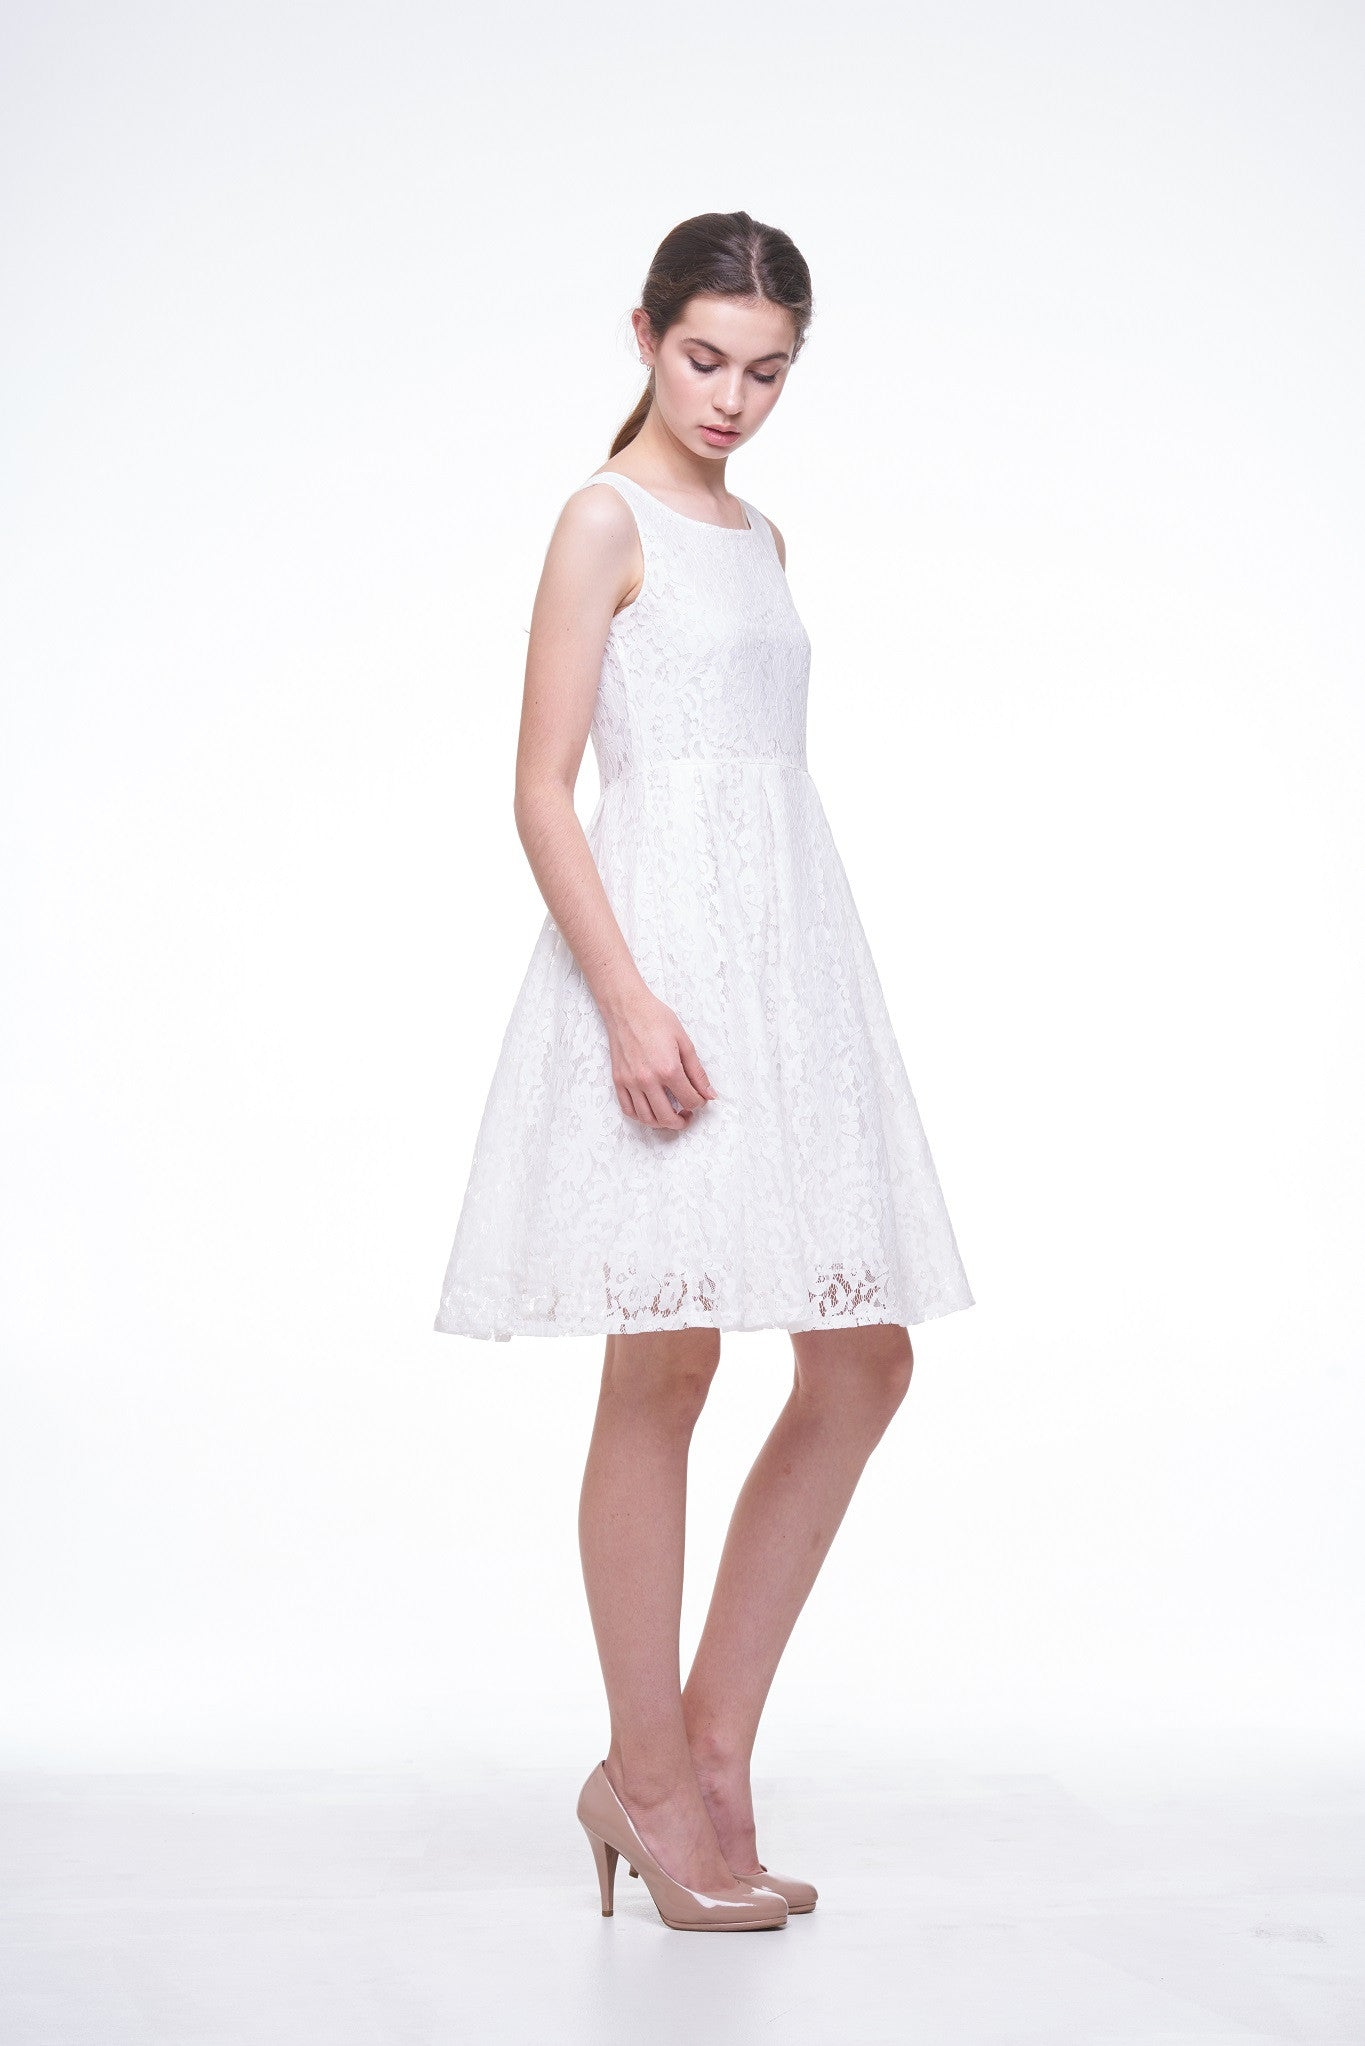 Dreamy Lace Dress - Not in Stock